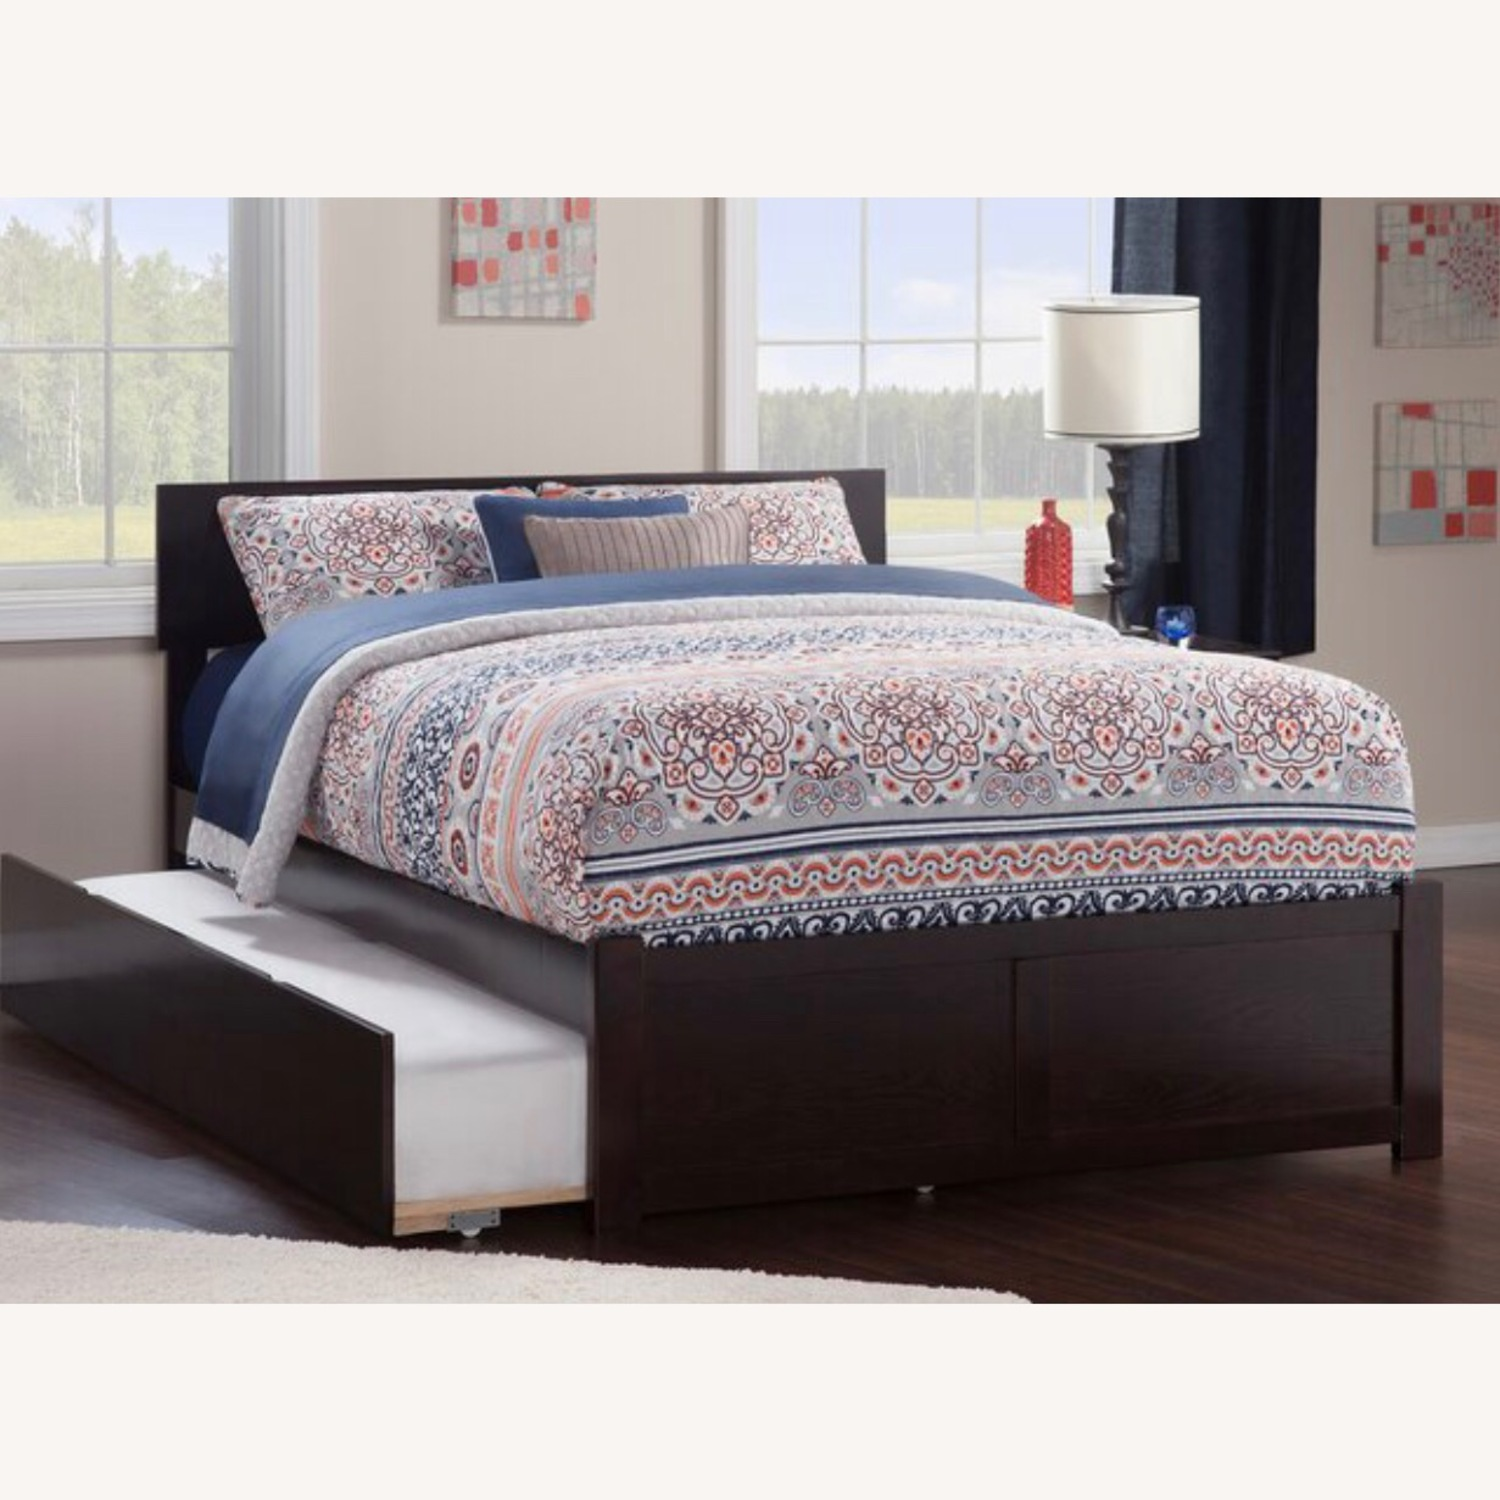 Full size bed in ESPRESSO wood w/drawers or trundle - image-3